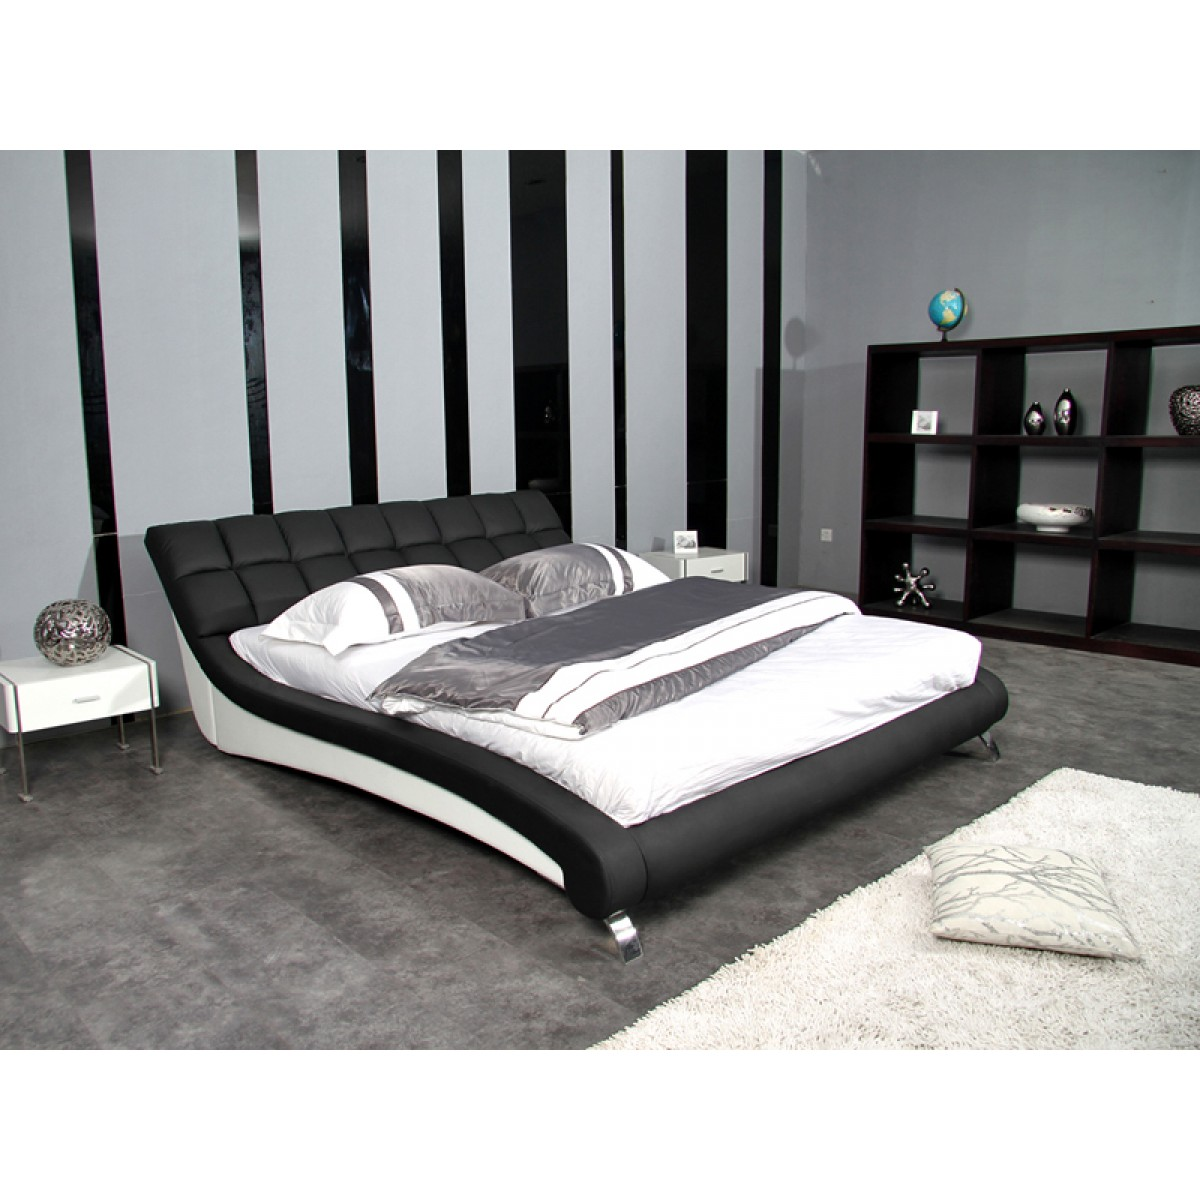 sommier 180 perfect sommier 180 with sommier 180 perfect cadre de lit lilo avec sommier x cm u. Black Bedroom Furniture Sets. Home Design Ideas